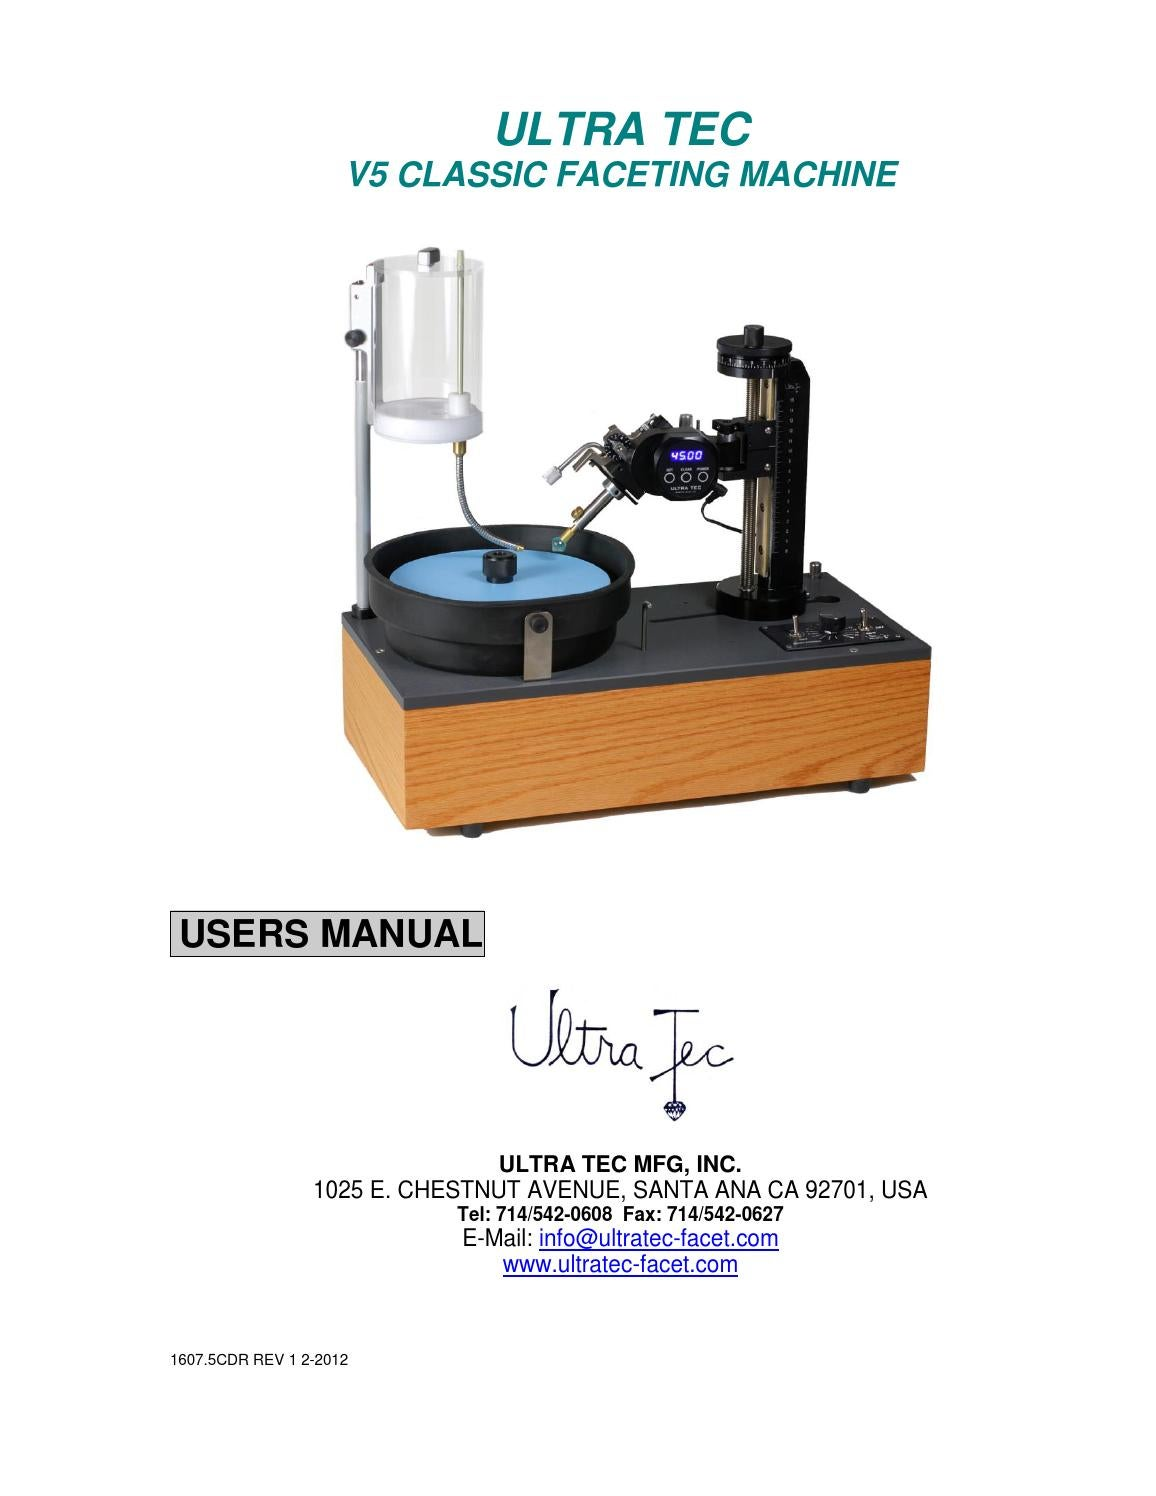 Ultra Tec V5 Classic Faceting Machine User Manual By Best Method For Controlling How A Motor Stops Maximizes Issuu